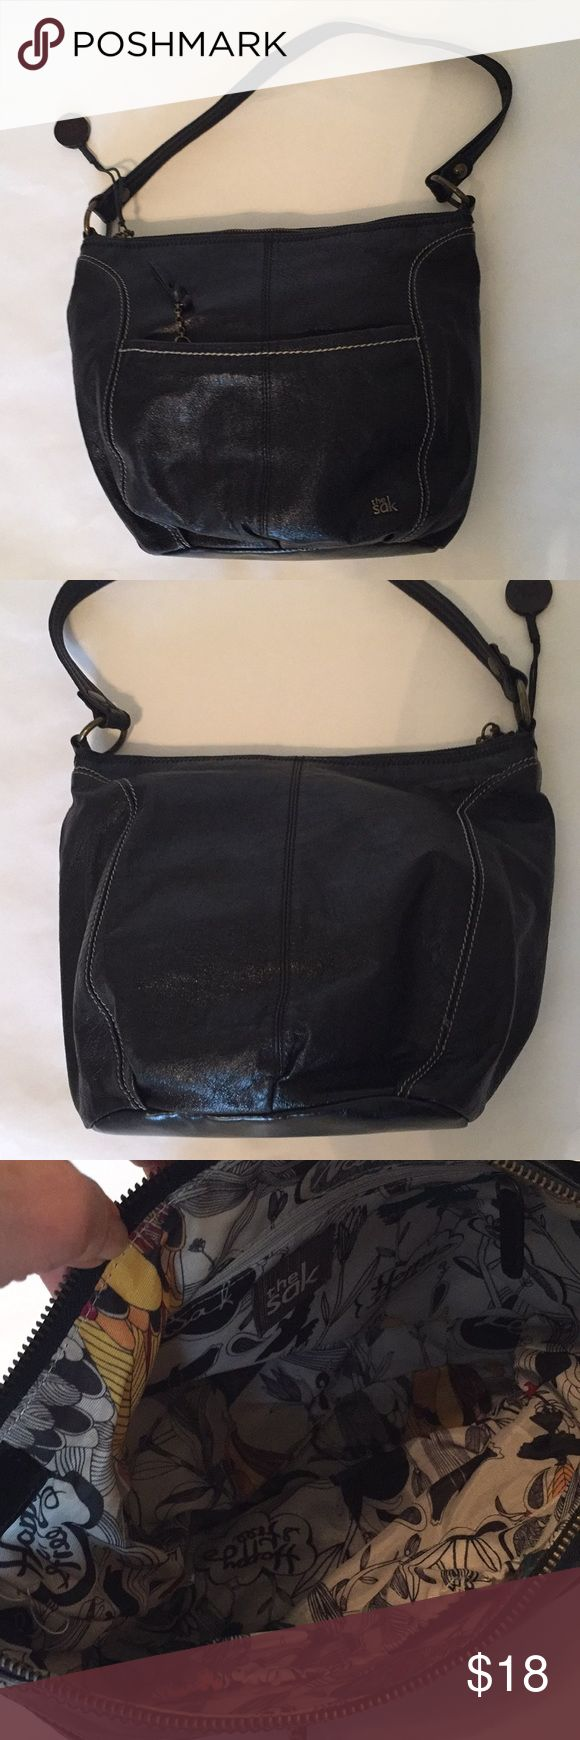 """EUC The Sak black leather purse Sak black leather purse/shoulder bag. 14"""" x 19"""" x 4"""" at base. Outside zippered pocket, 100% leather body, 100% poly lining with Sak design. Inside has one zippered pocket and 2 slip pockets. Handle has 10"""" drop. Excellent condition, no signs of wear. The Sak Bags Shoulder Bags"""